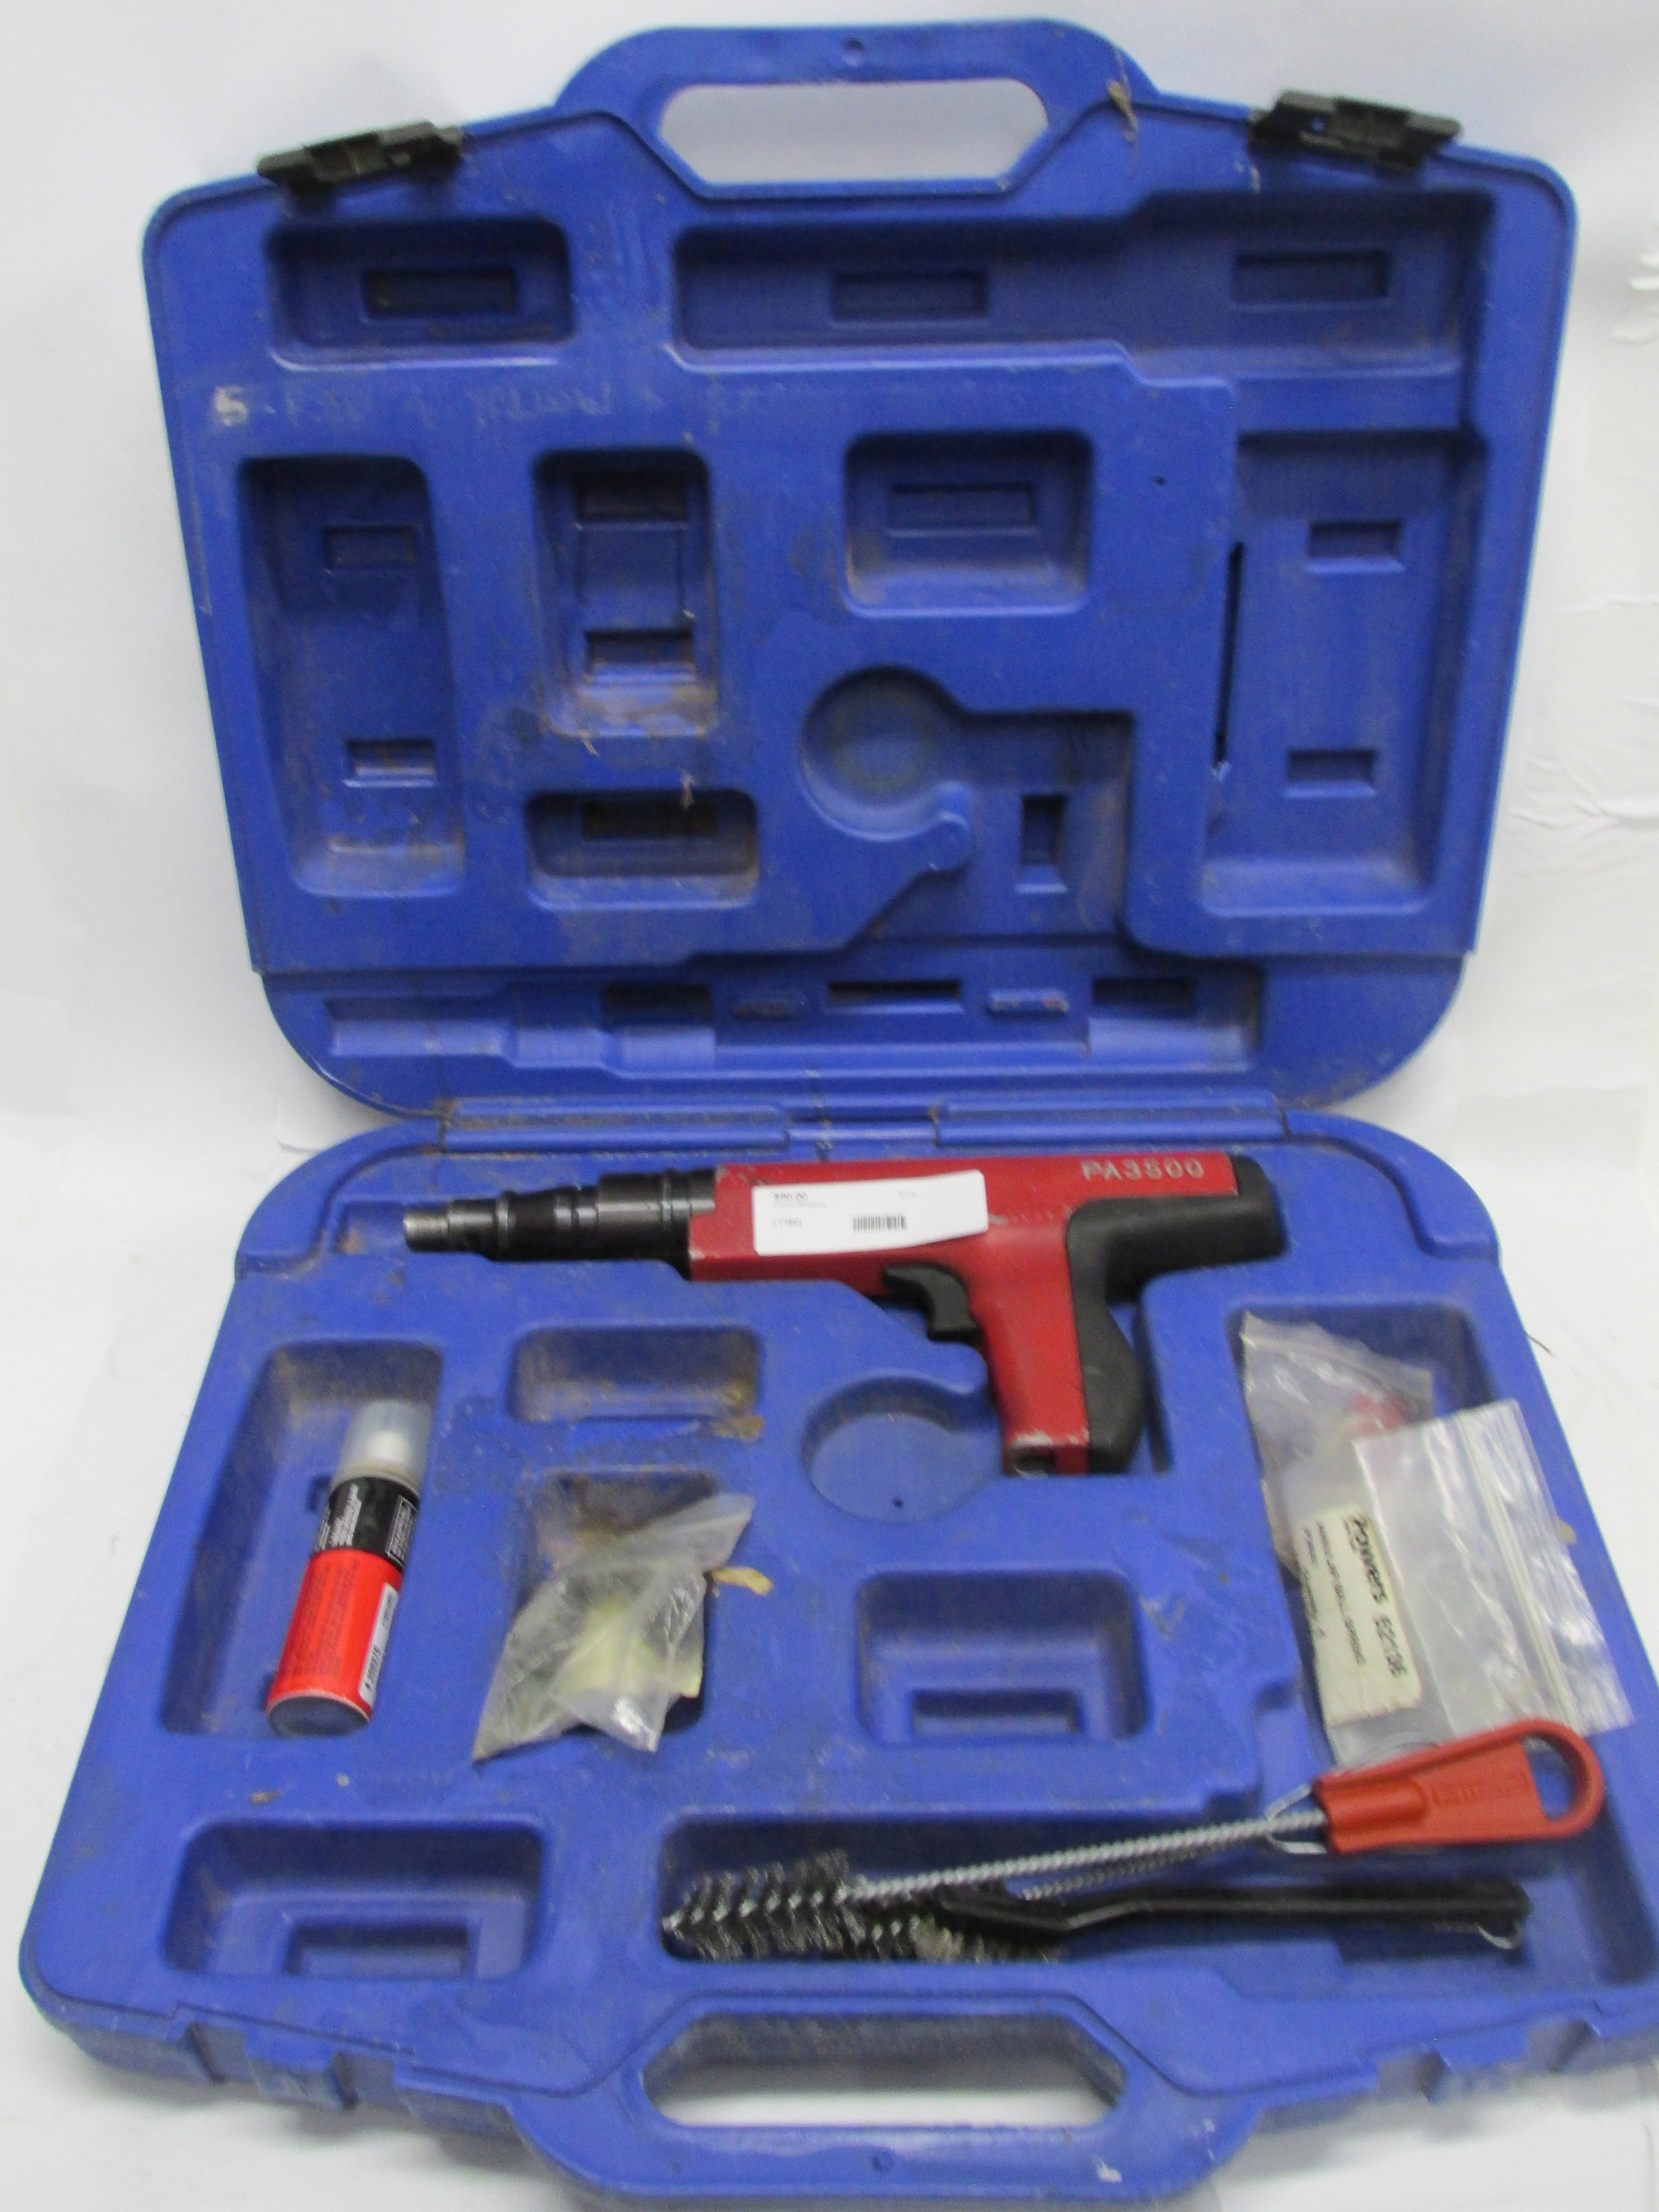 Powers PA3500 Powder Fastener with Cleaning Brushes, Hilti Spray in Hard Case